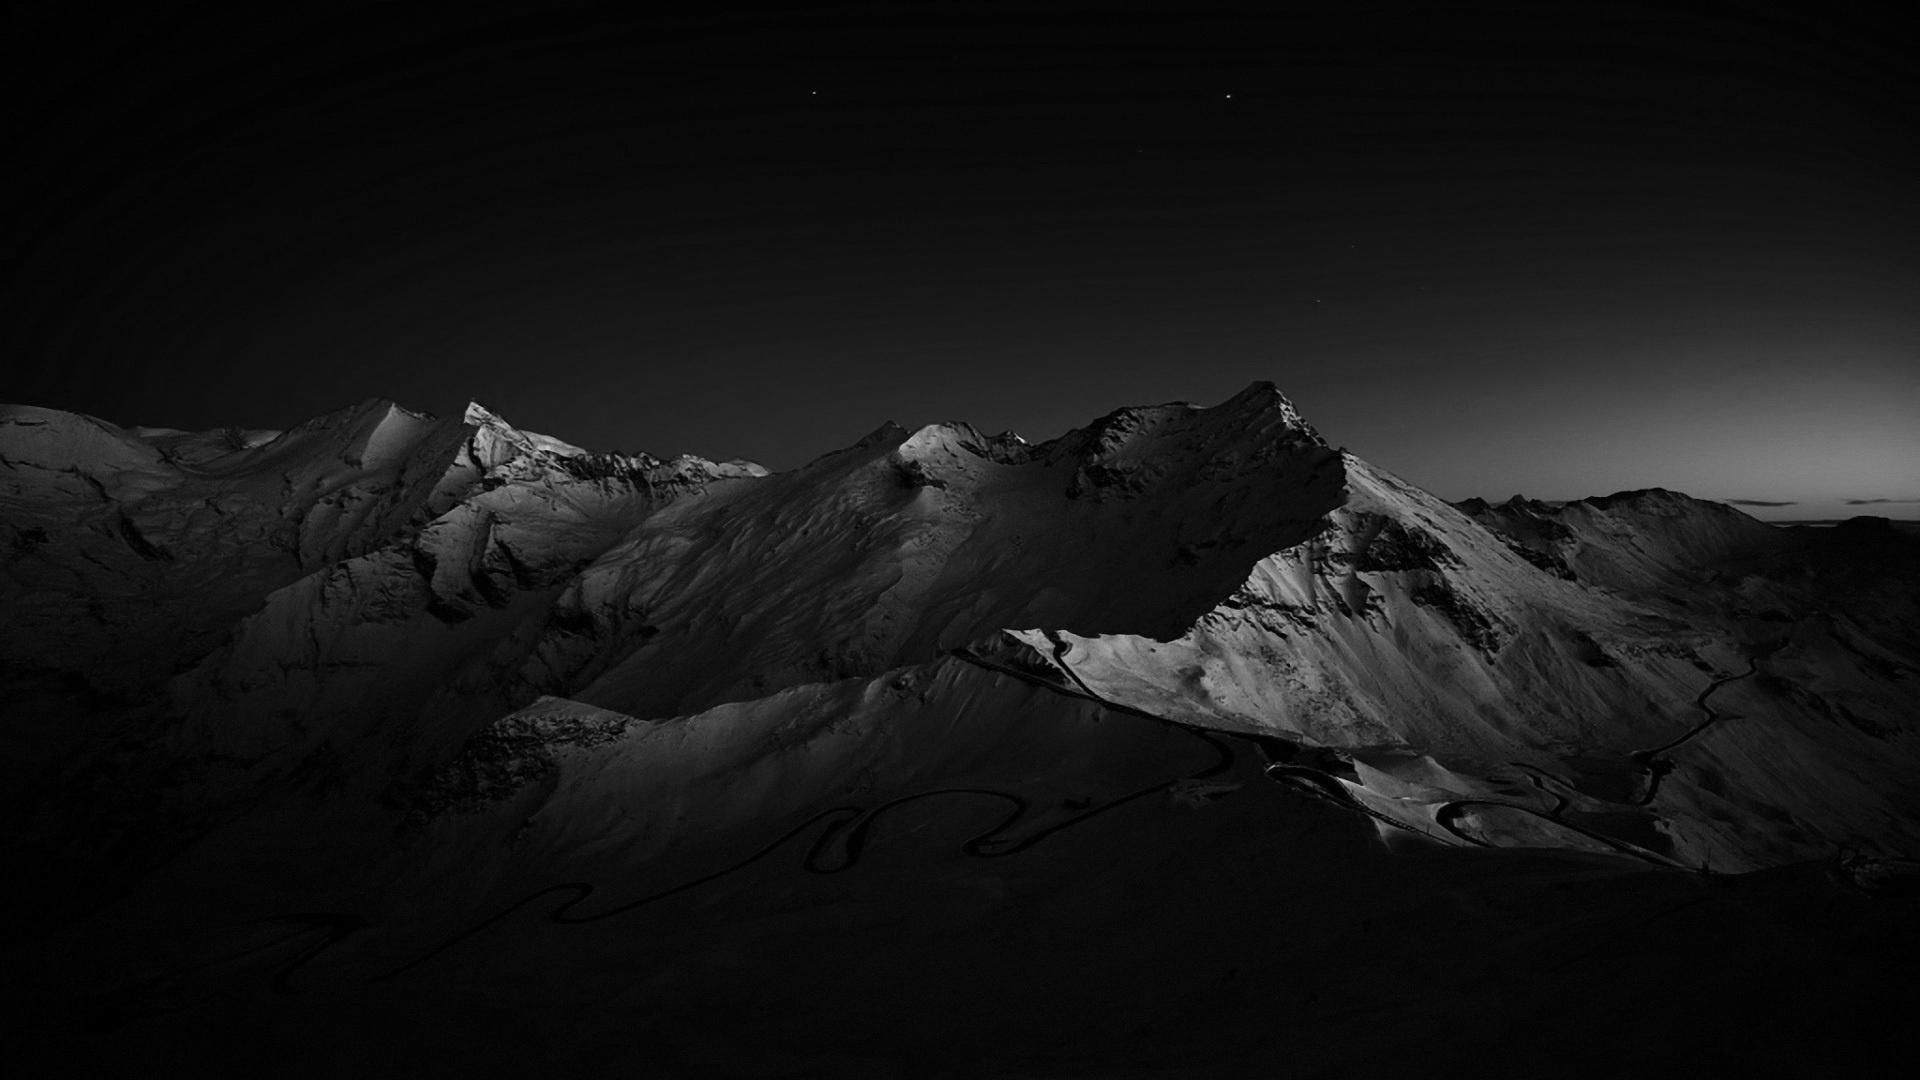 Night Mountain Wallpapers High Resolution With HD Wallpaper 1920x1080 Px 11991 KB